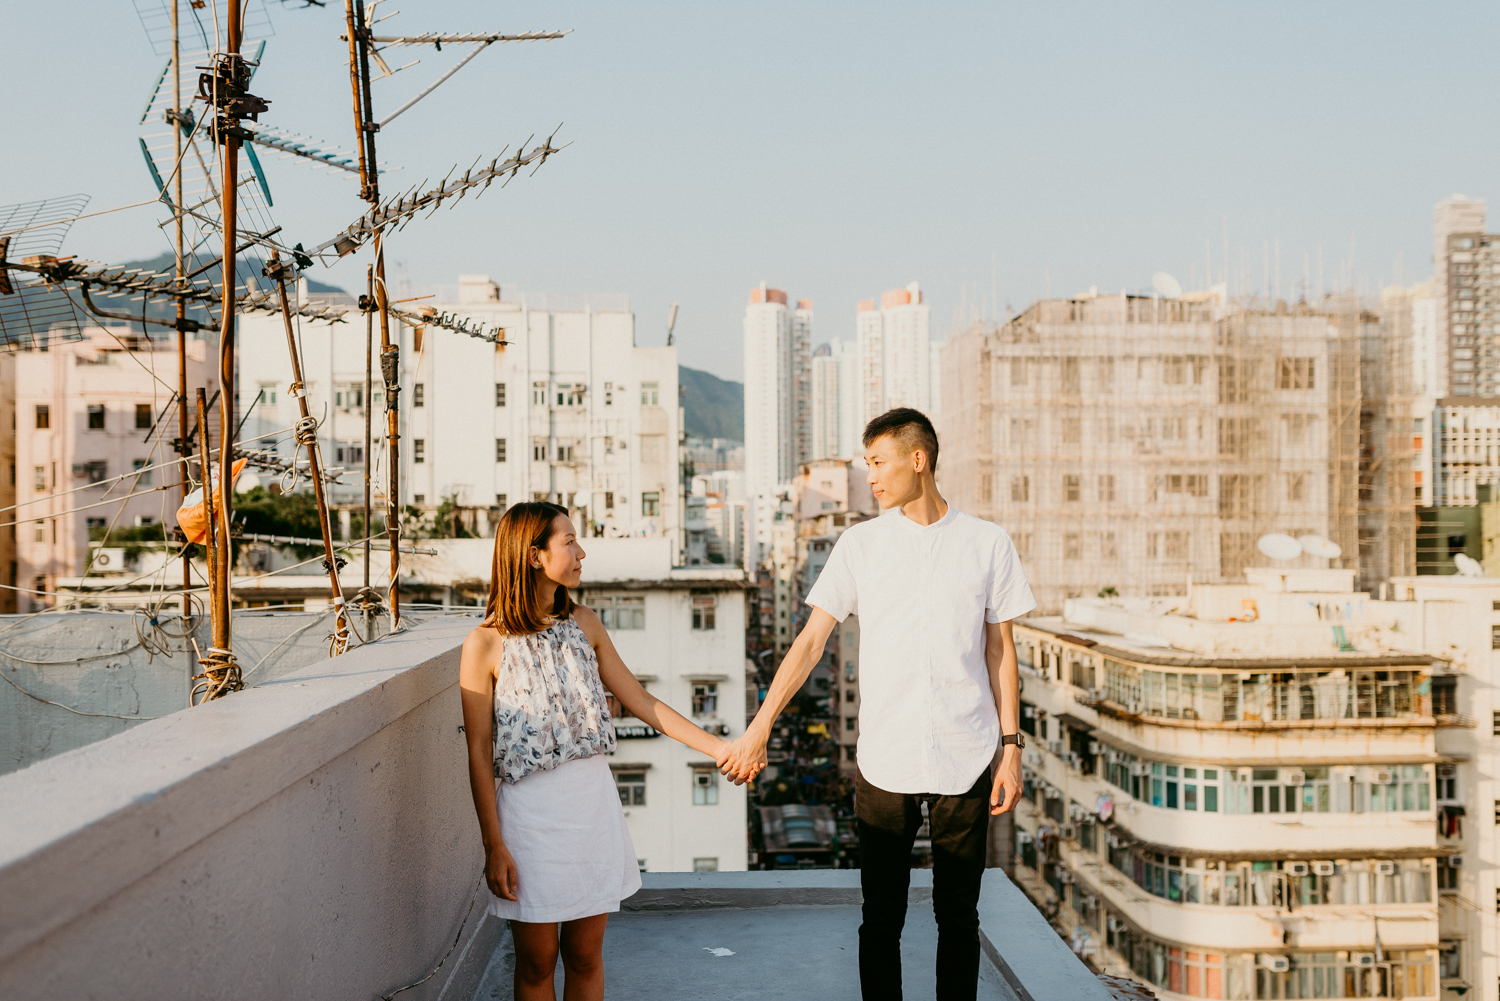 Hong_Kong_Kowloon_Destination_Engagement_Shoot-204.JPG